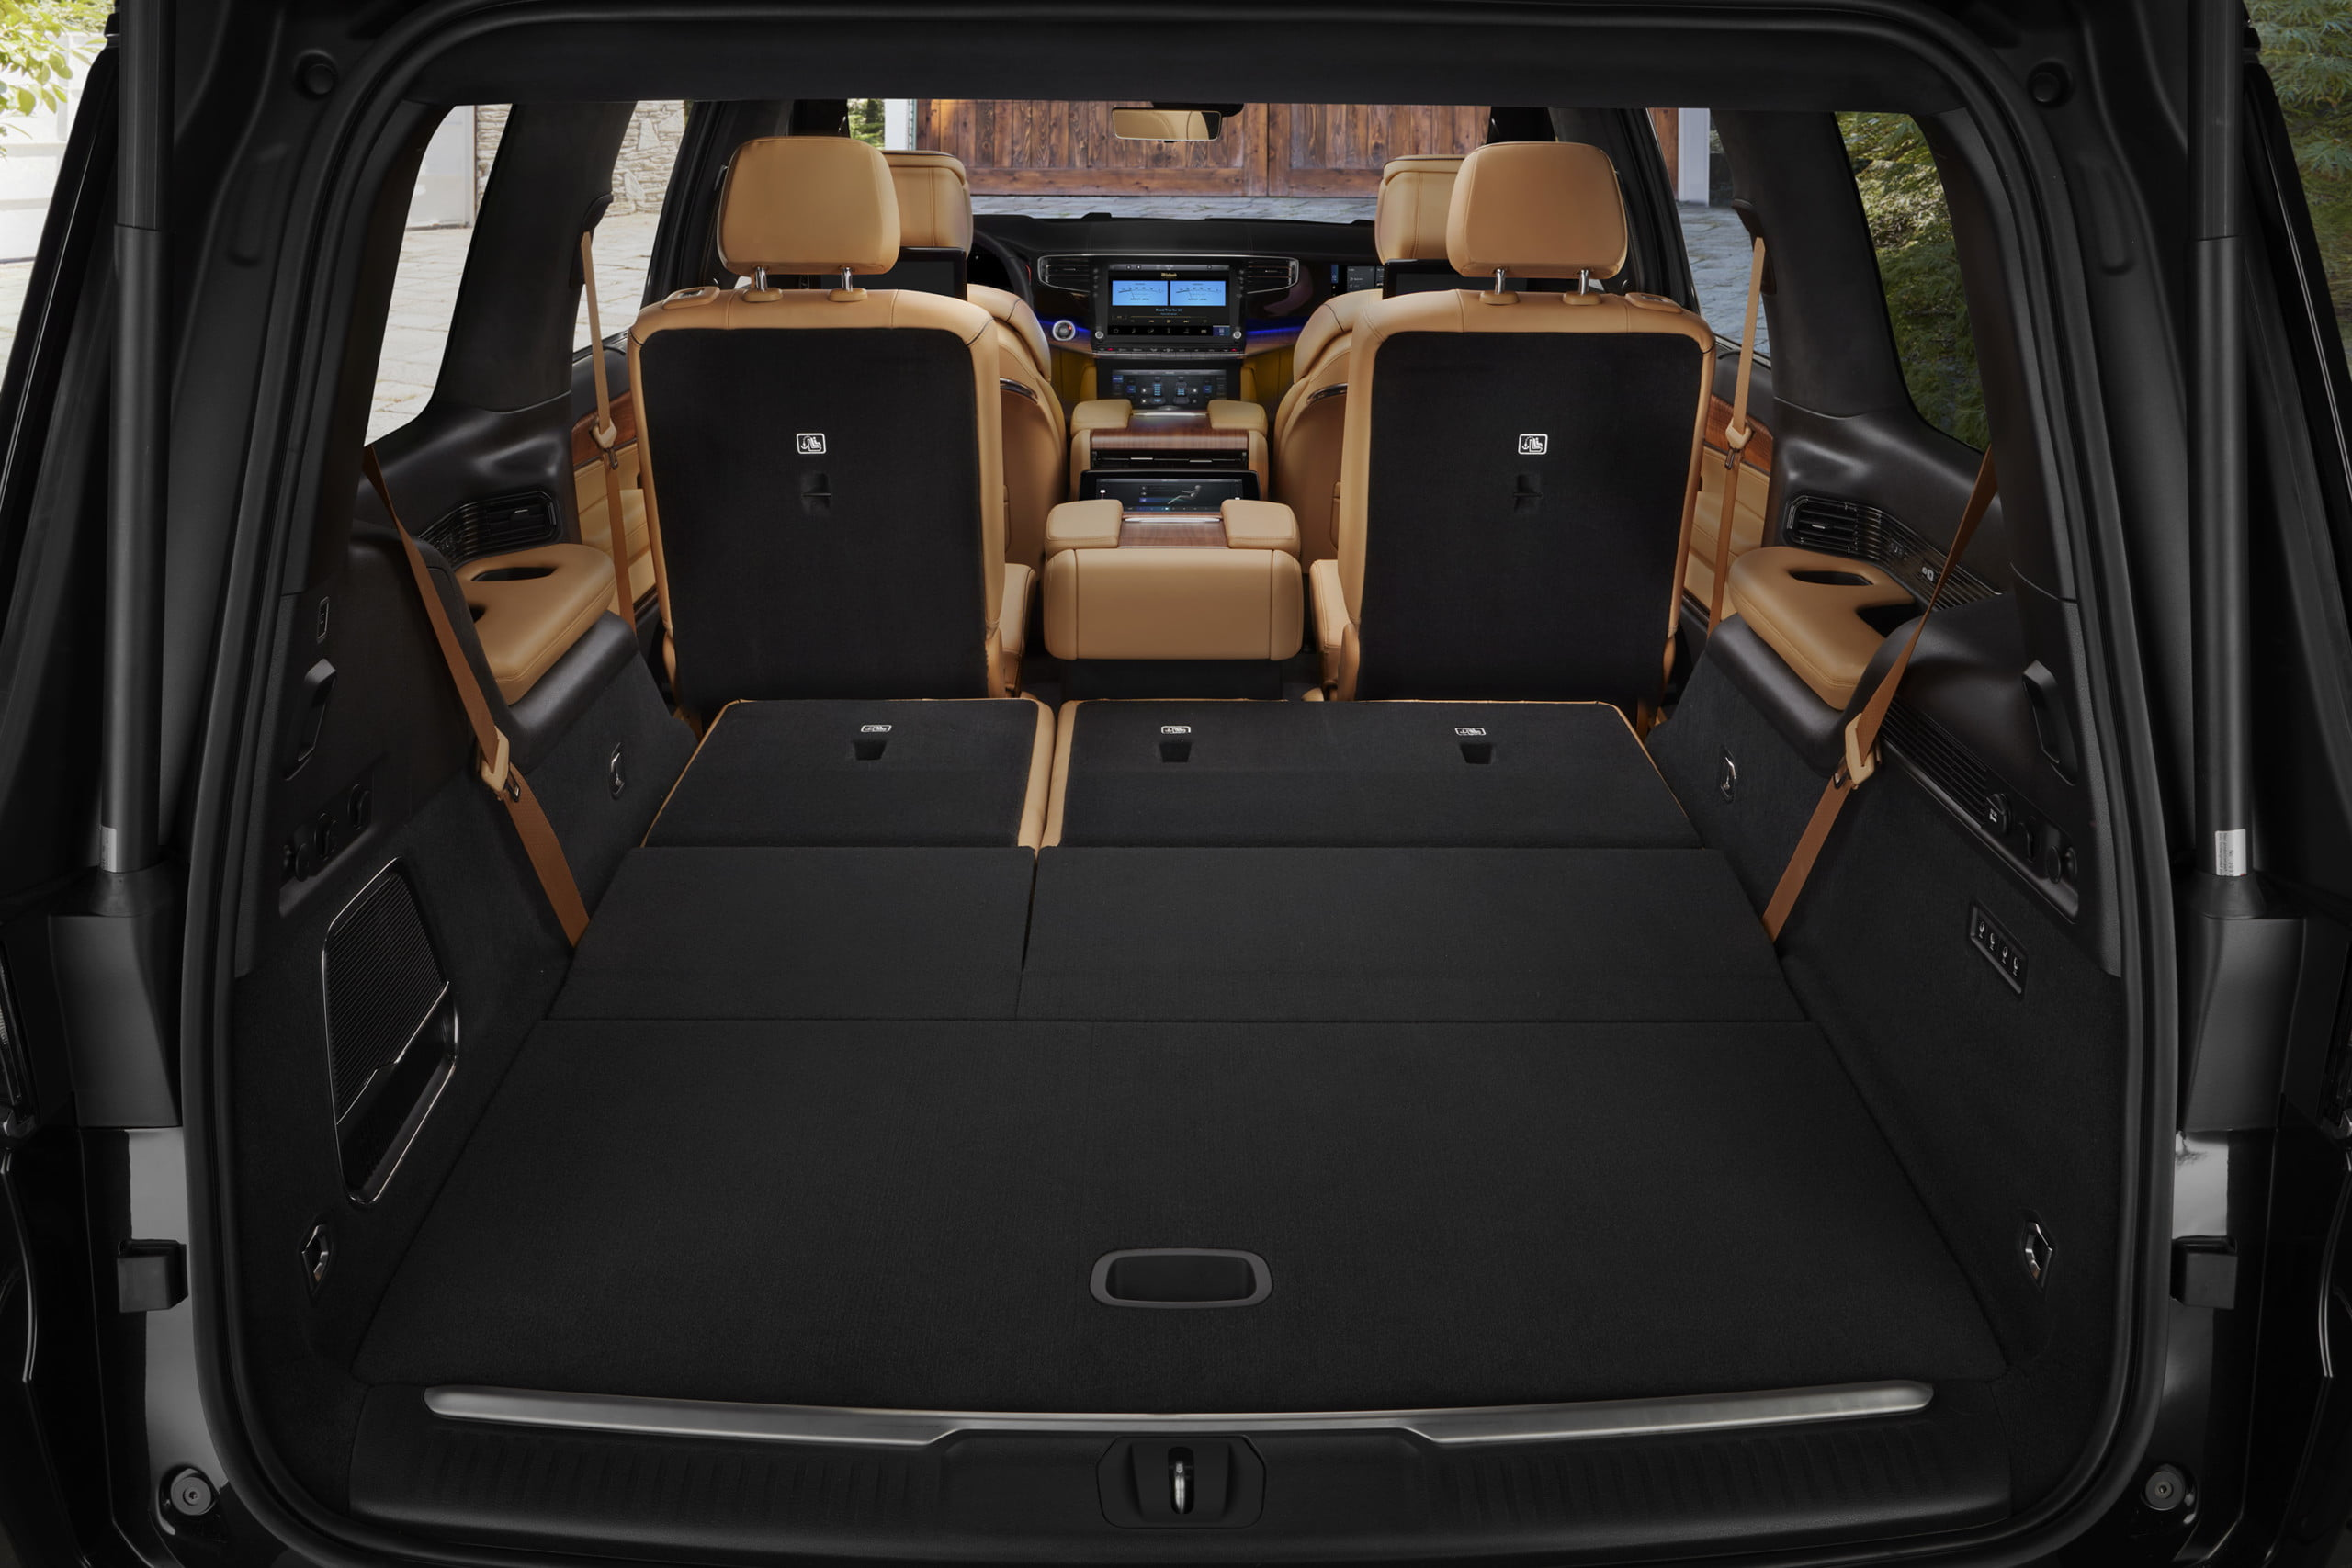 2022 Grand Wagoneer cargo space behind second row